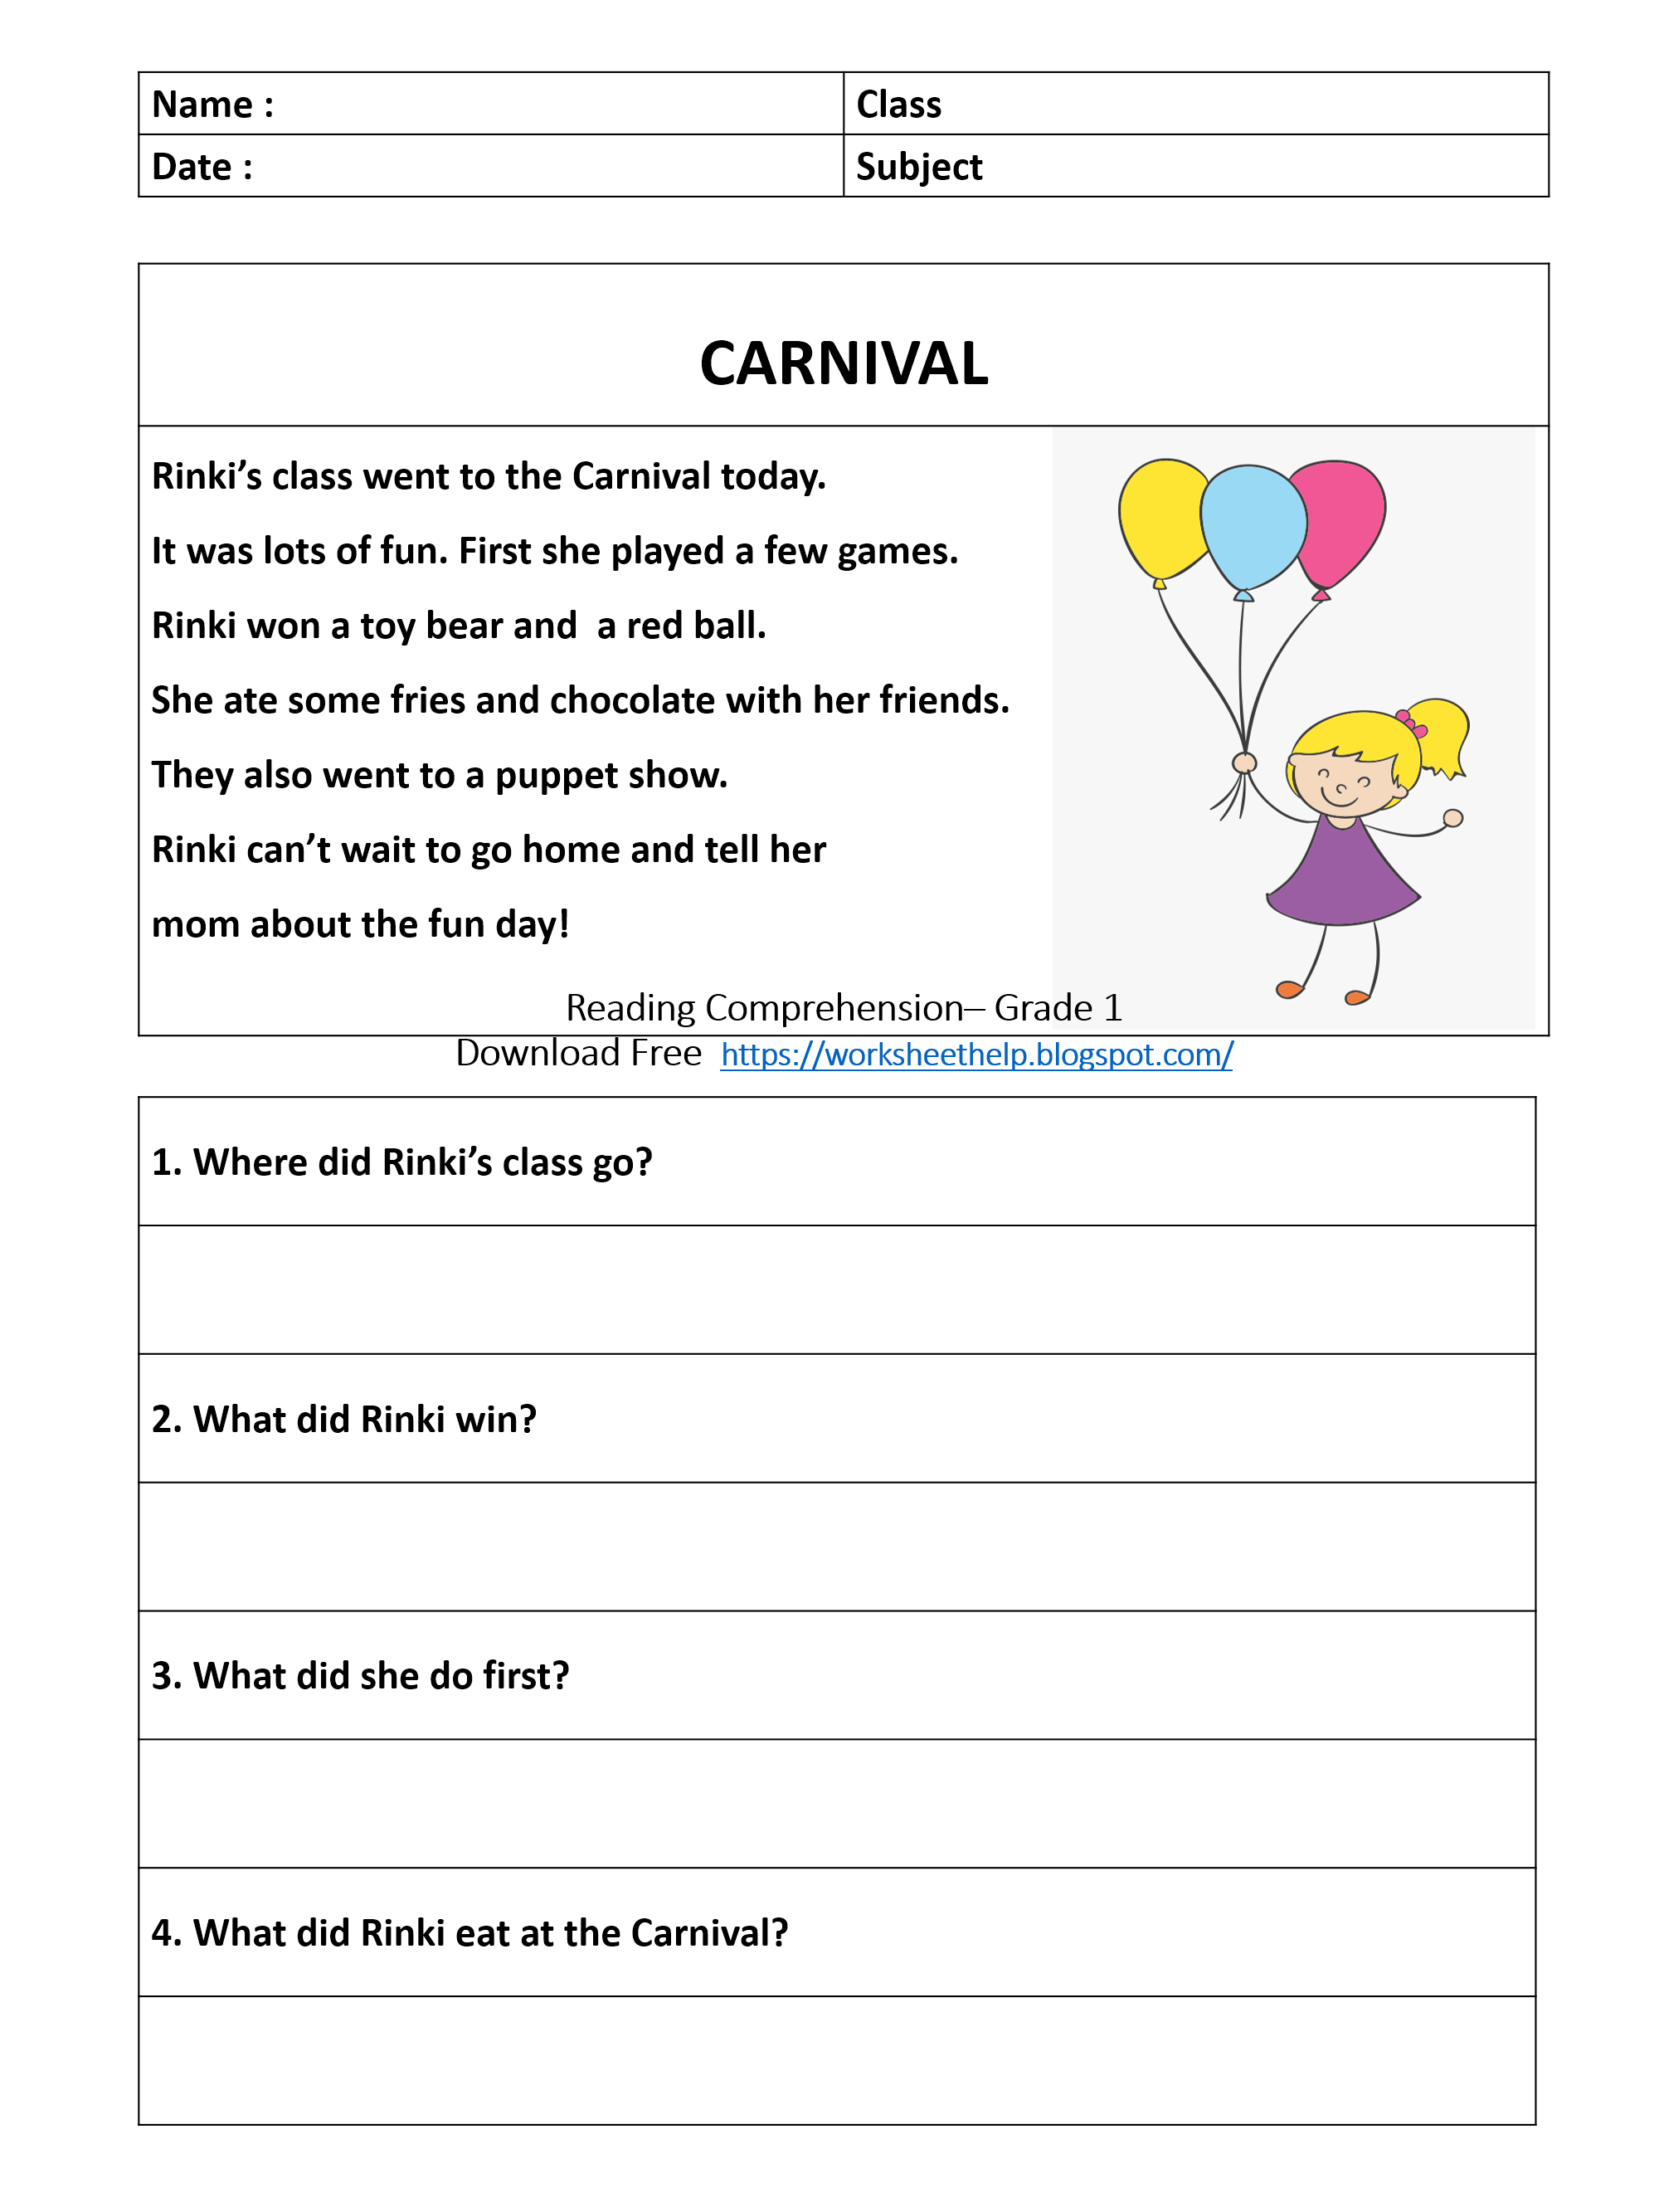 hight resolution of Reading Comprehension Worksheet - Grade 1 - Carnival   Comprehension  worksheets